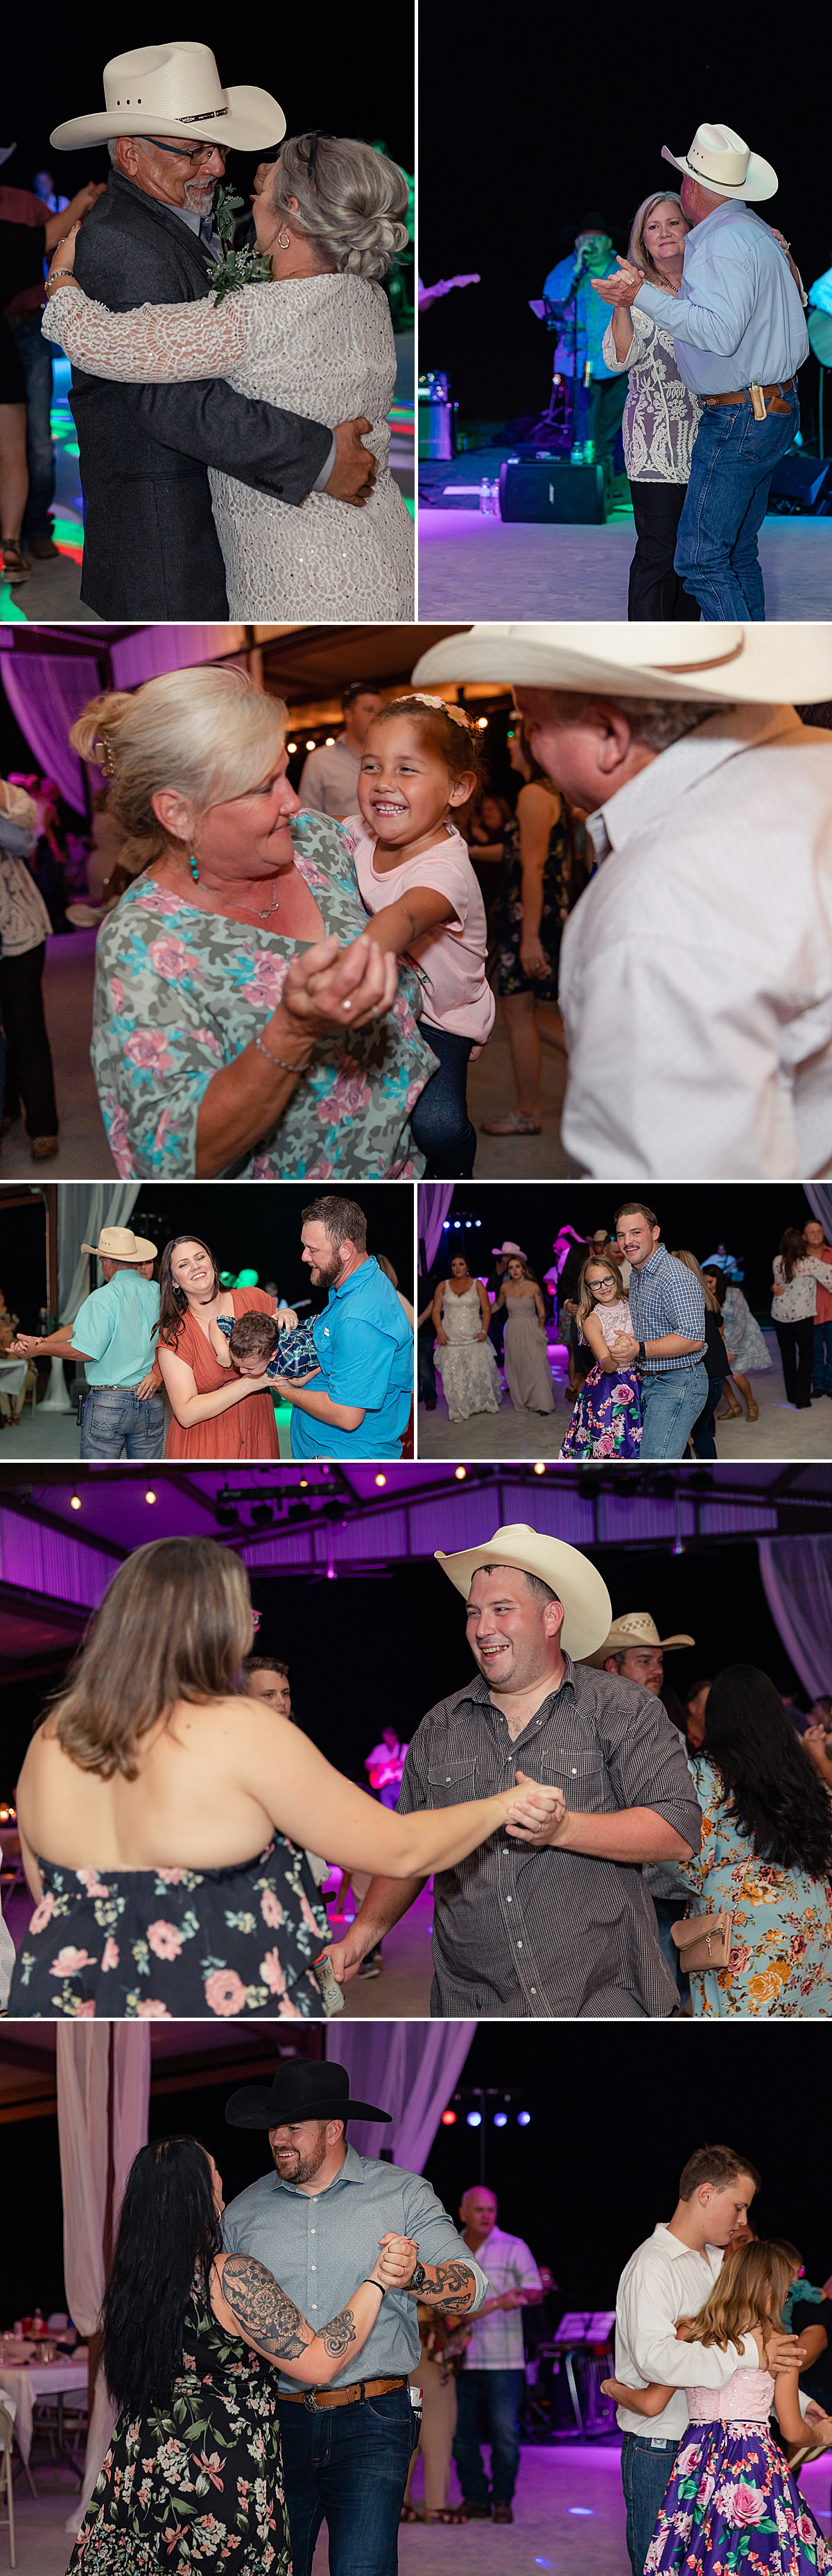 Rustic-Texas-Wedding-Hollow-Creek-Ranch-Carly-Barton-Photography_0005.jpg